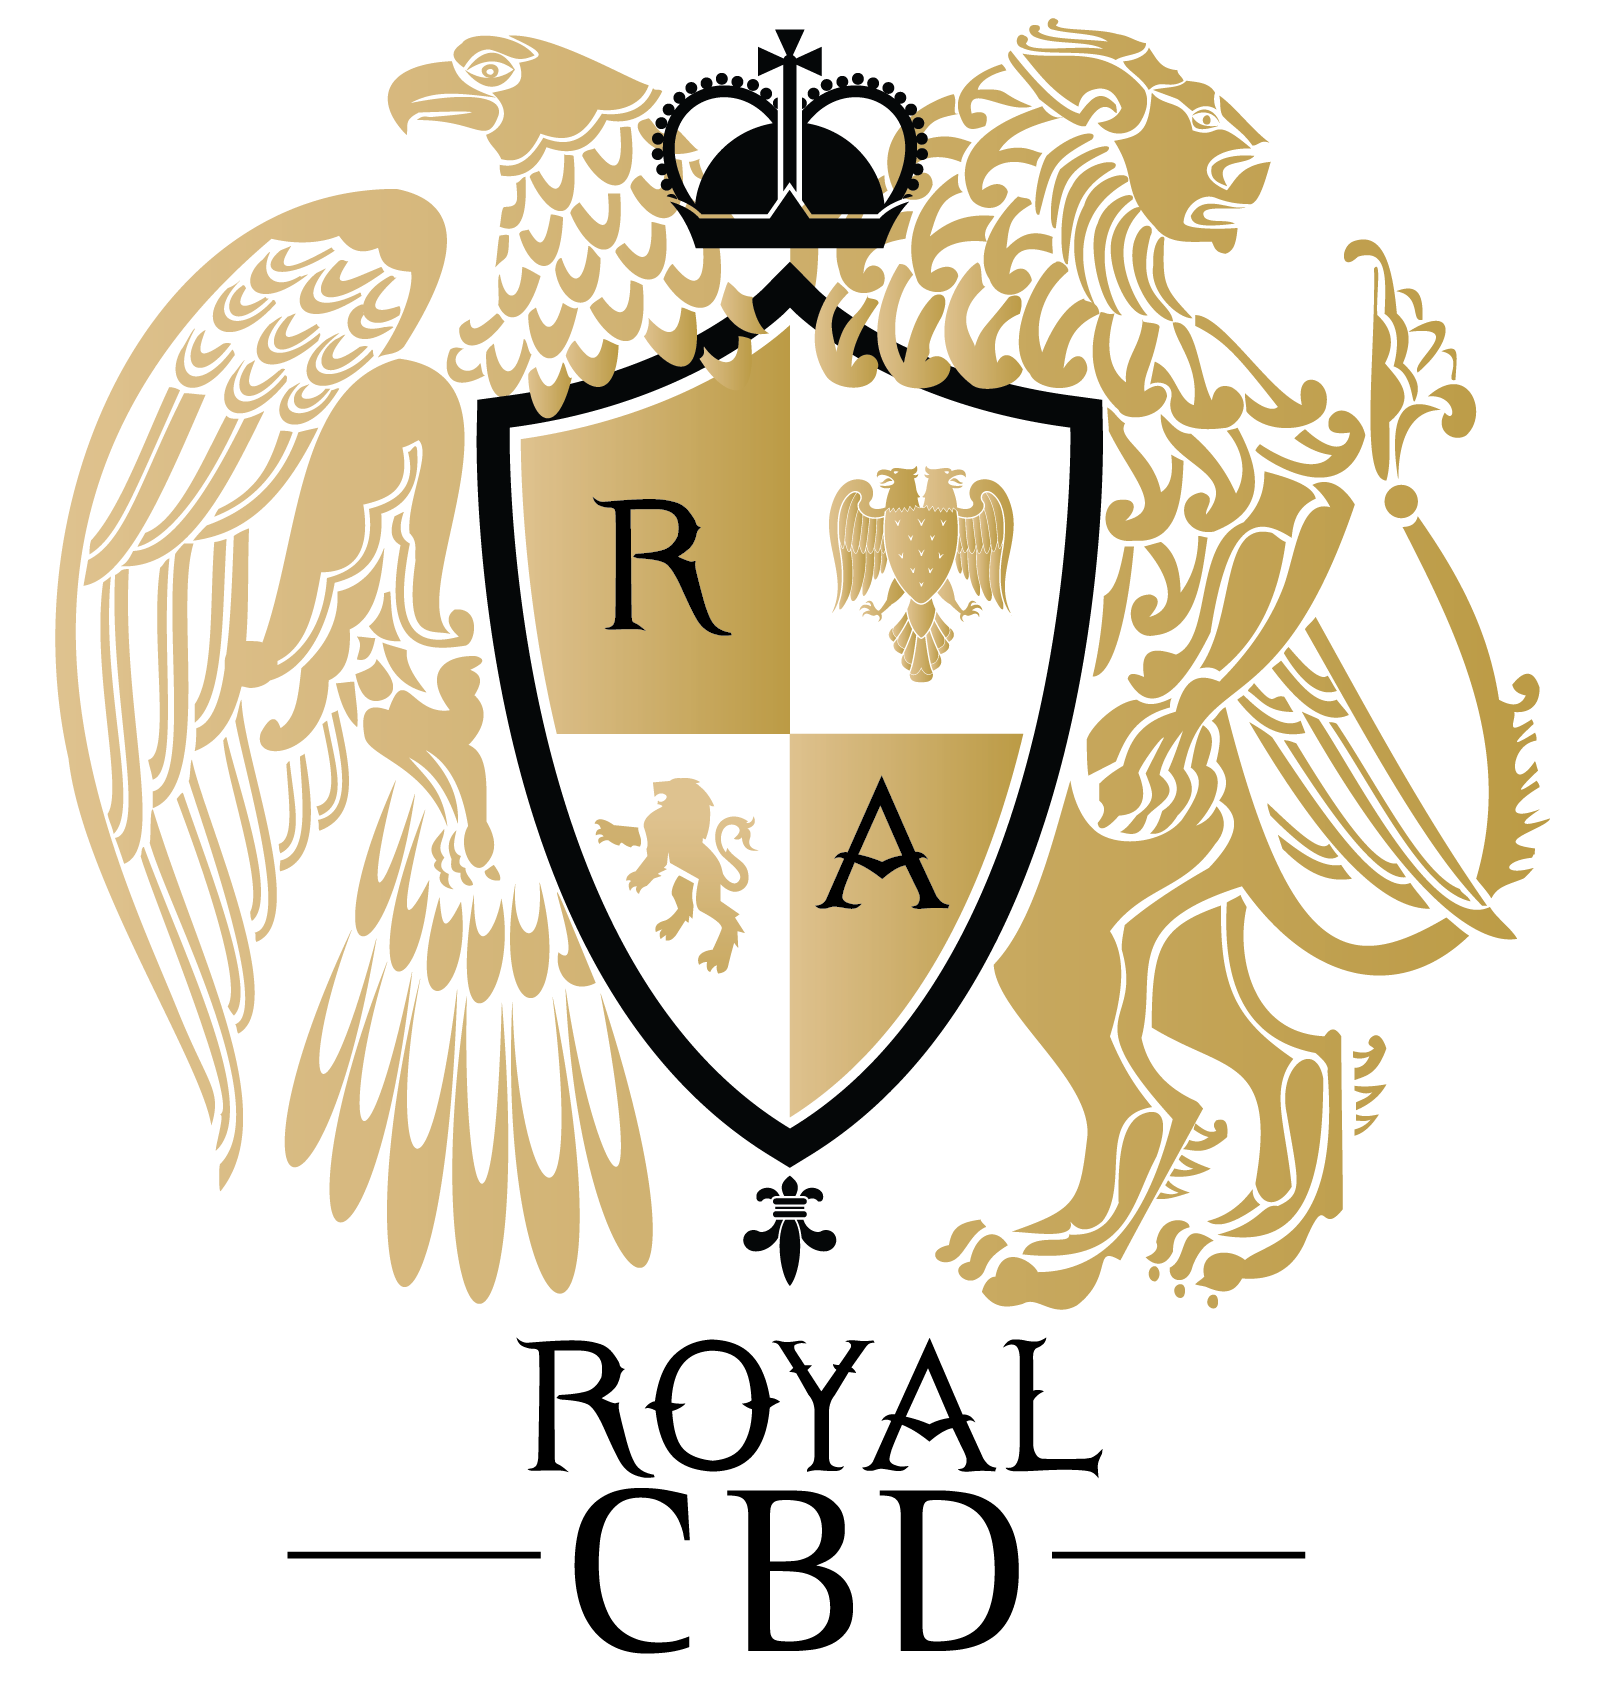 ra-royal-cbd-logo-final-01.png